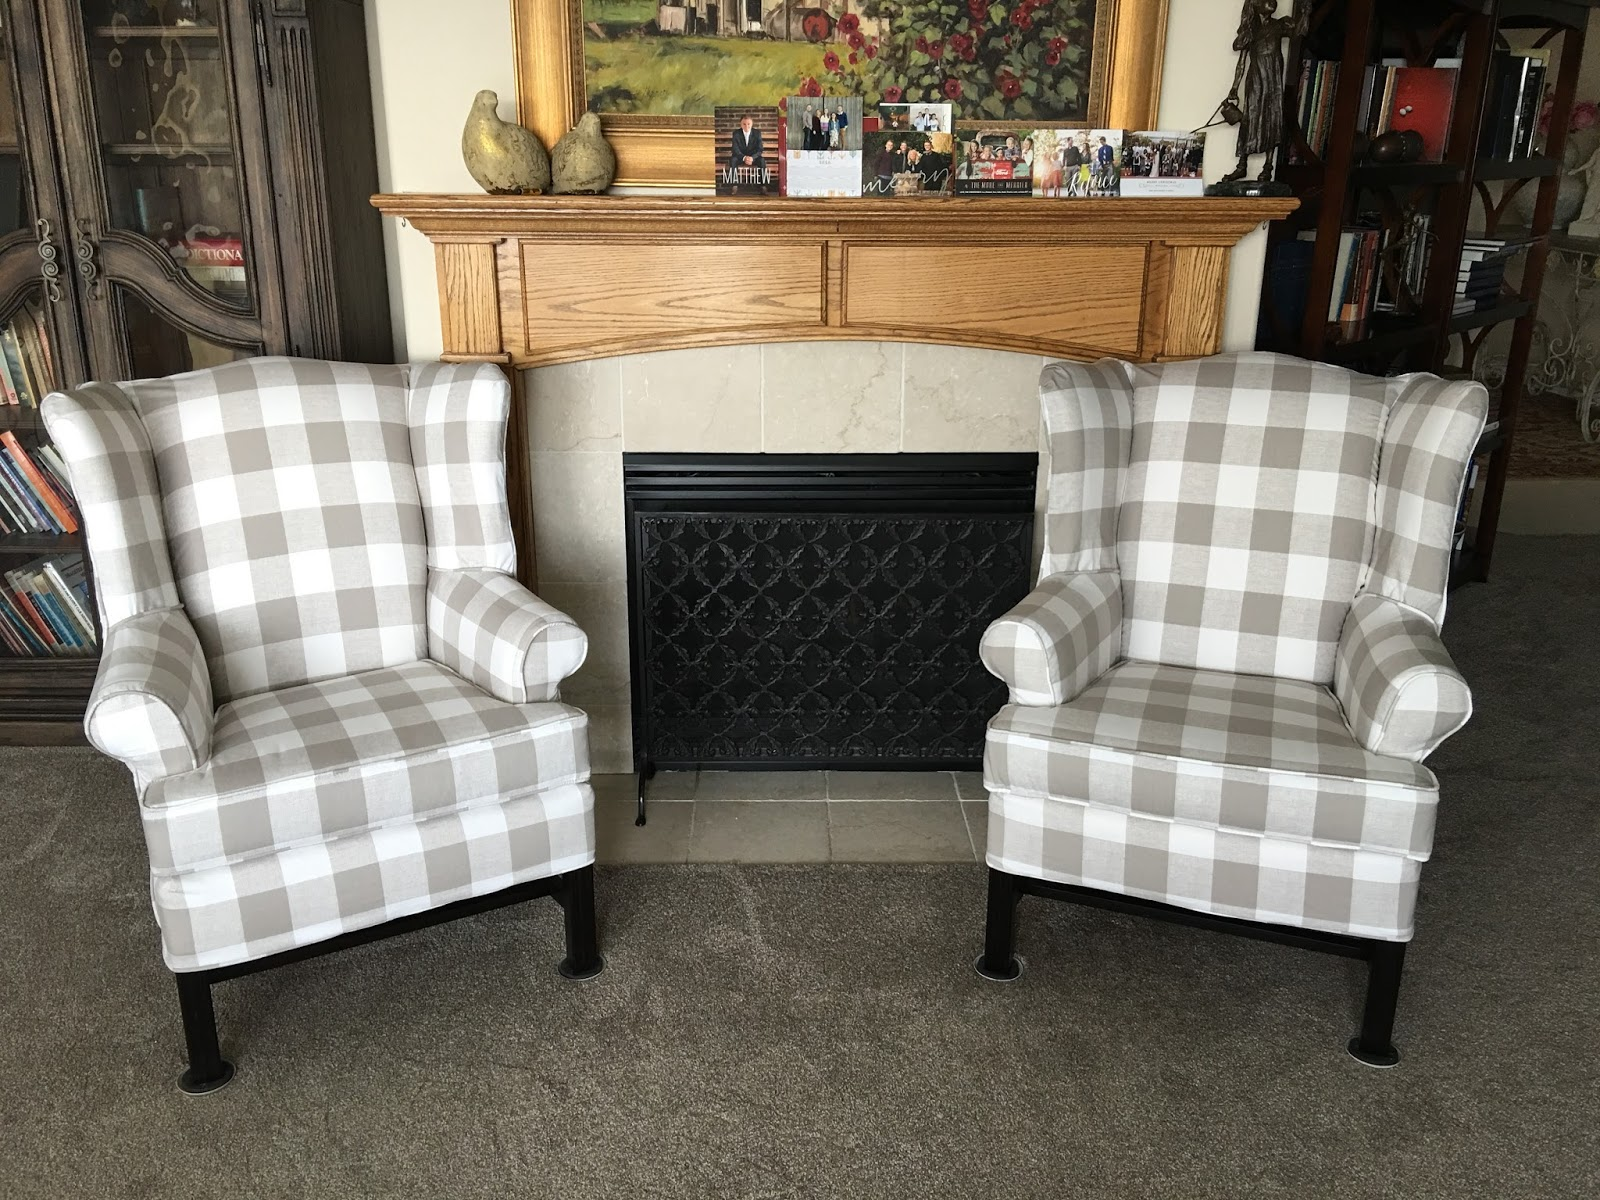 This Buffalo Check Is Amaze Balls!! It Can Practically Go With ANYTHING!  While I Was There Look At Other Furniture For Her I Saw The Chairs ...